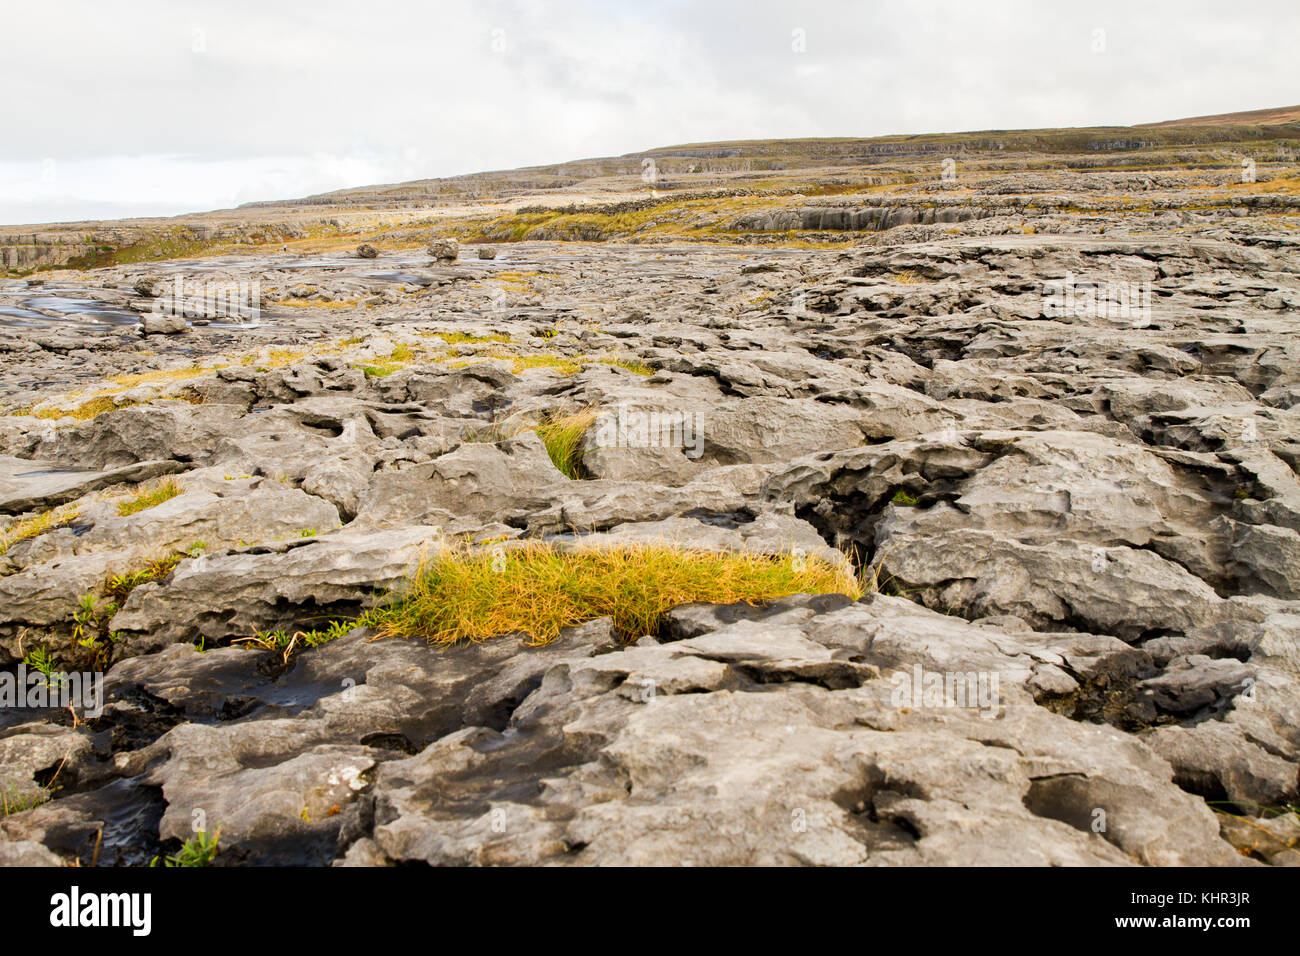 The Burren (in Irish: Boireann - great rock), the karst-landscape region in west County Clare, Ireland. - Stock Image